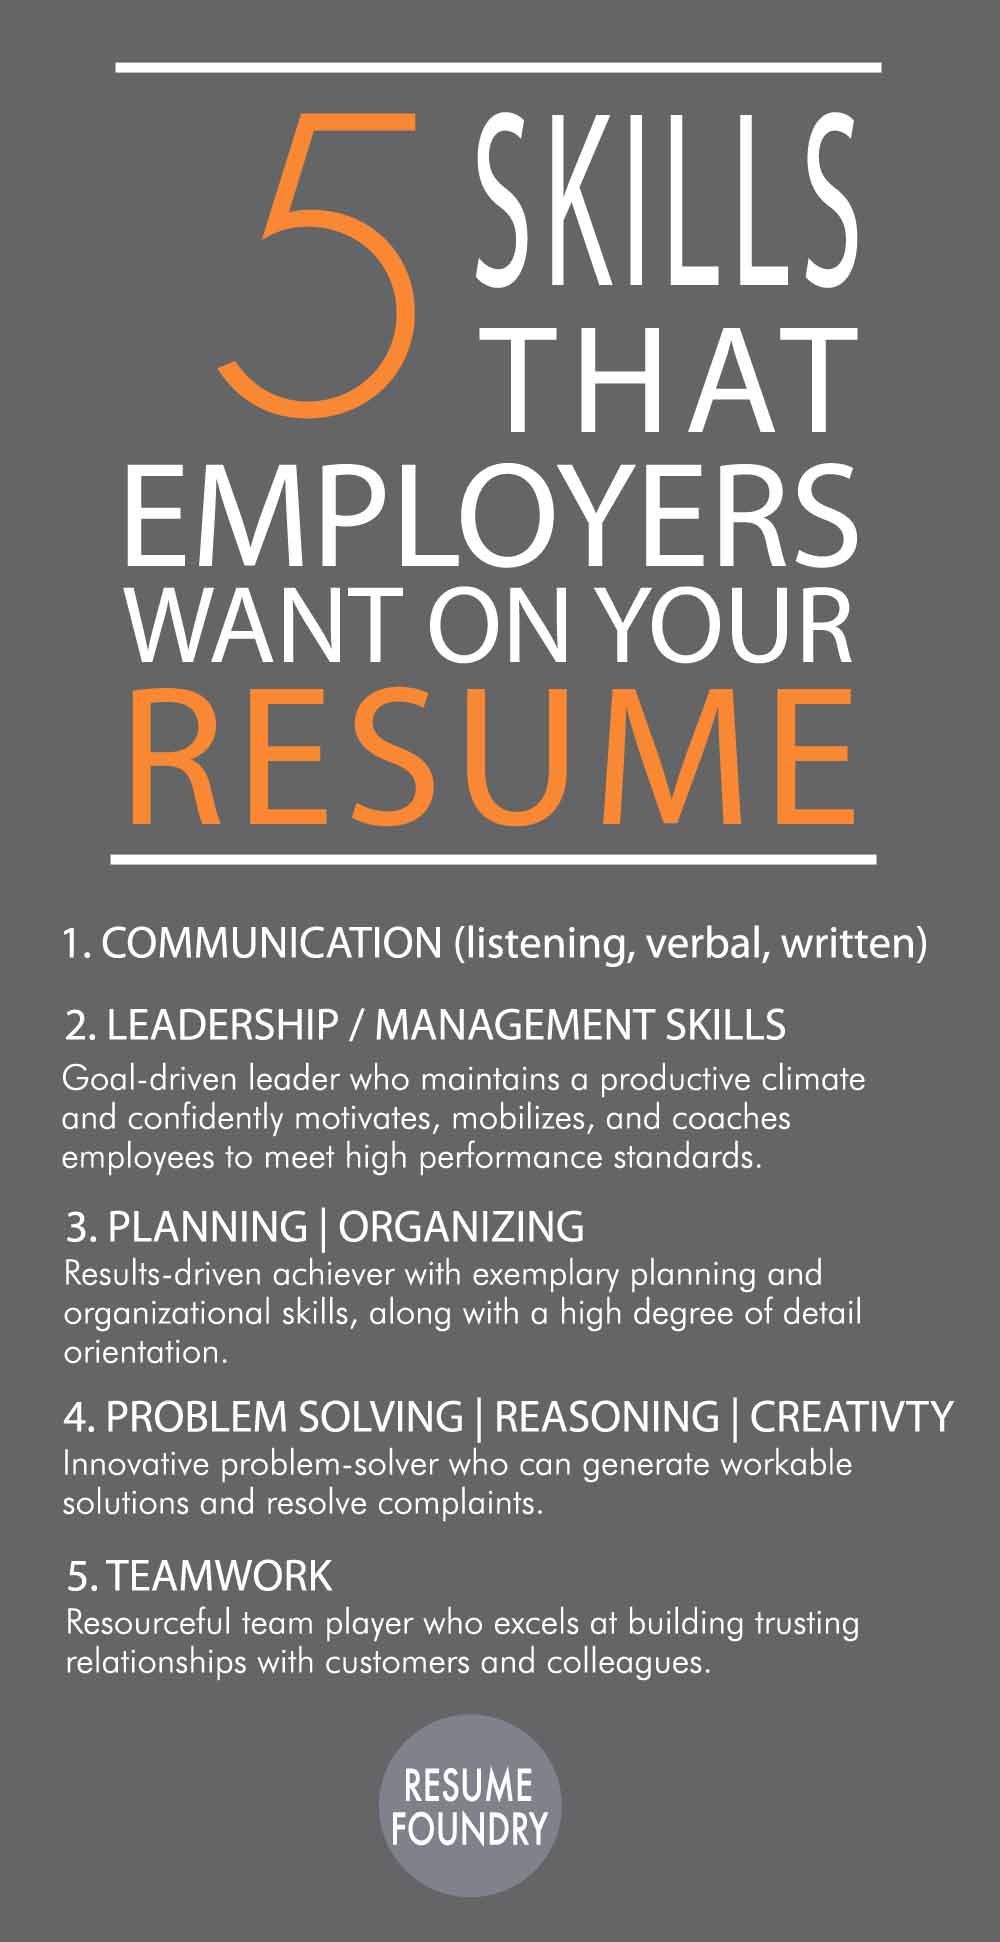 5 skills that employees want on your resume - Job Resume Help